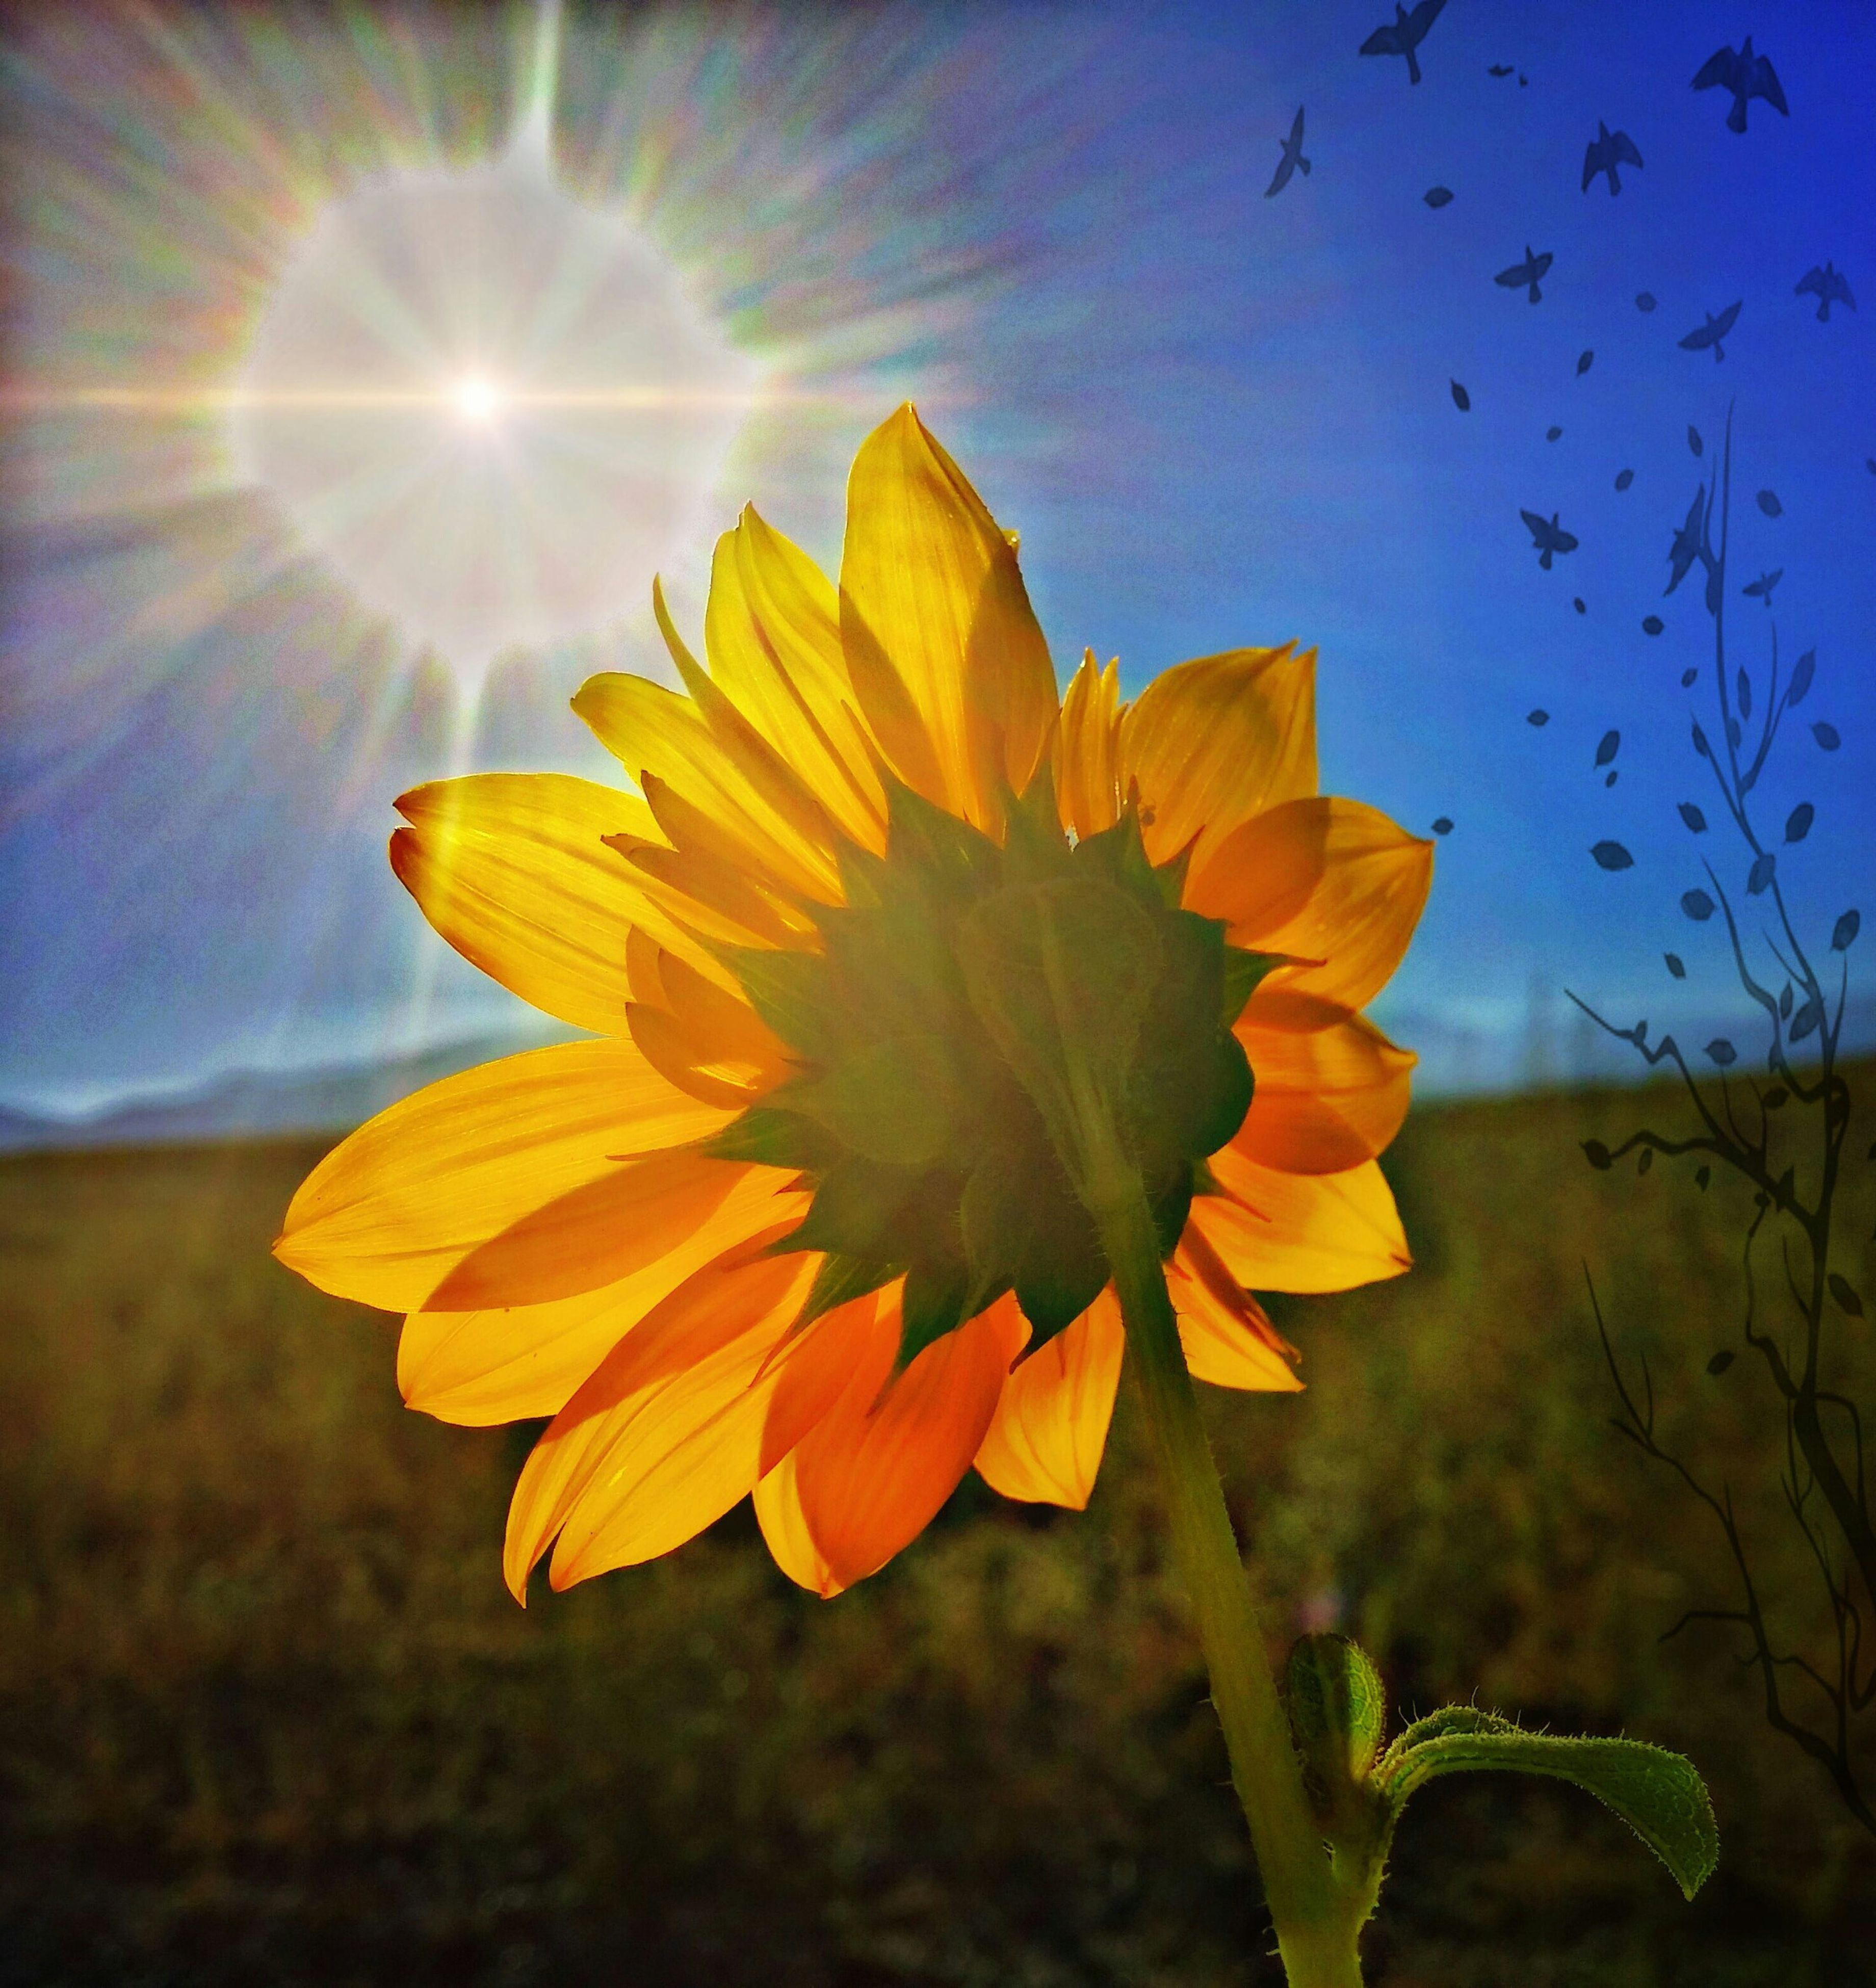 flower, petal, fragility, flower head, beauty in nature, freshness, plant, growth, yellow, nature, field, sunlight, sun, close-up, blooming, blue, focus on foreground, sky, sunflower, sunbeam